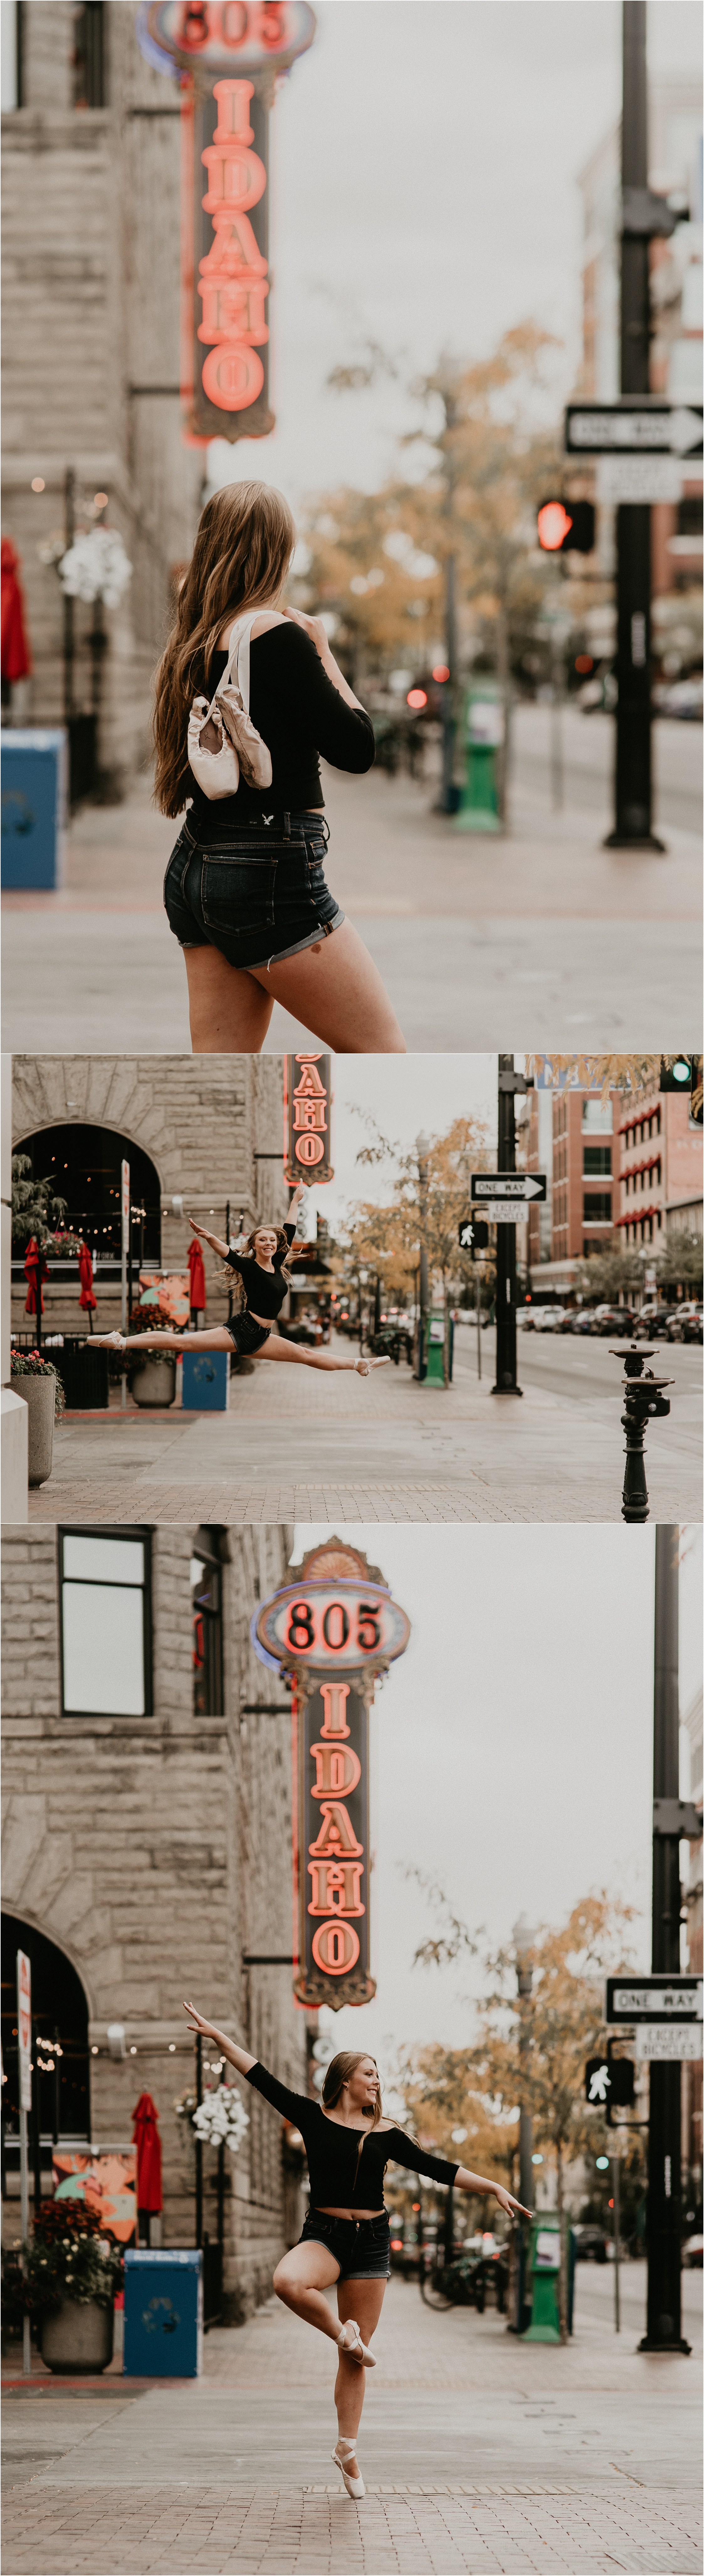 Boise Senior Photographer Makayla Madden Photography Senior Girl Capital High School Kailee Roberts Urban Dancing Senior Pictures Ballet Point Dance Senior Photos  Downtown Boise Idaho St Sign